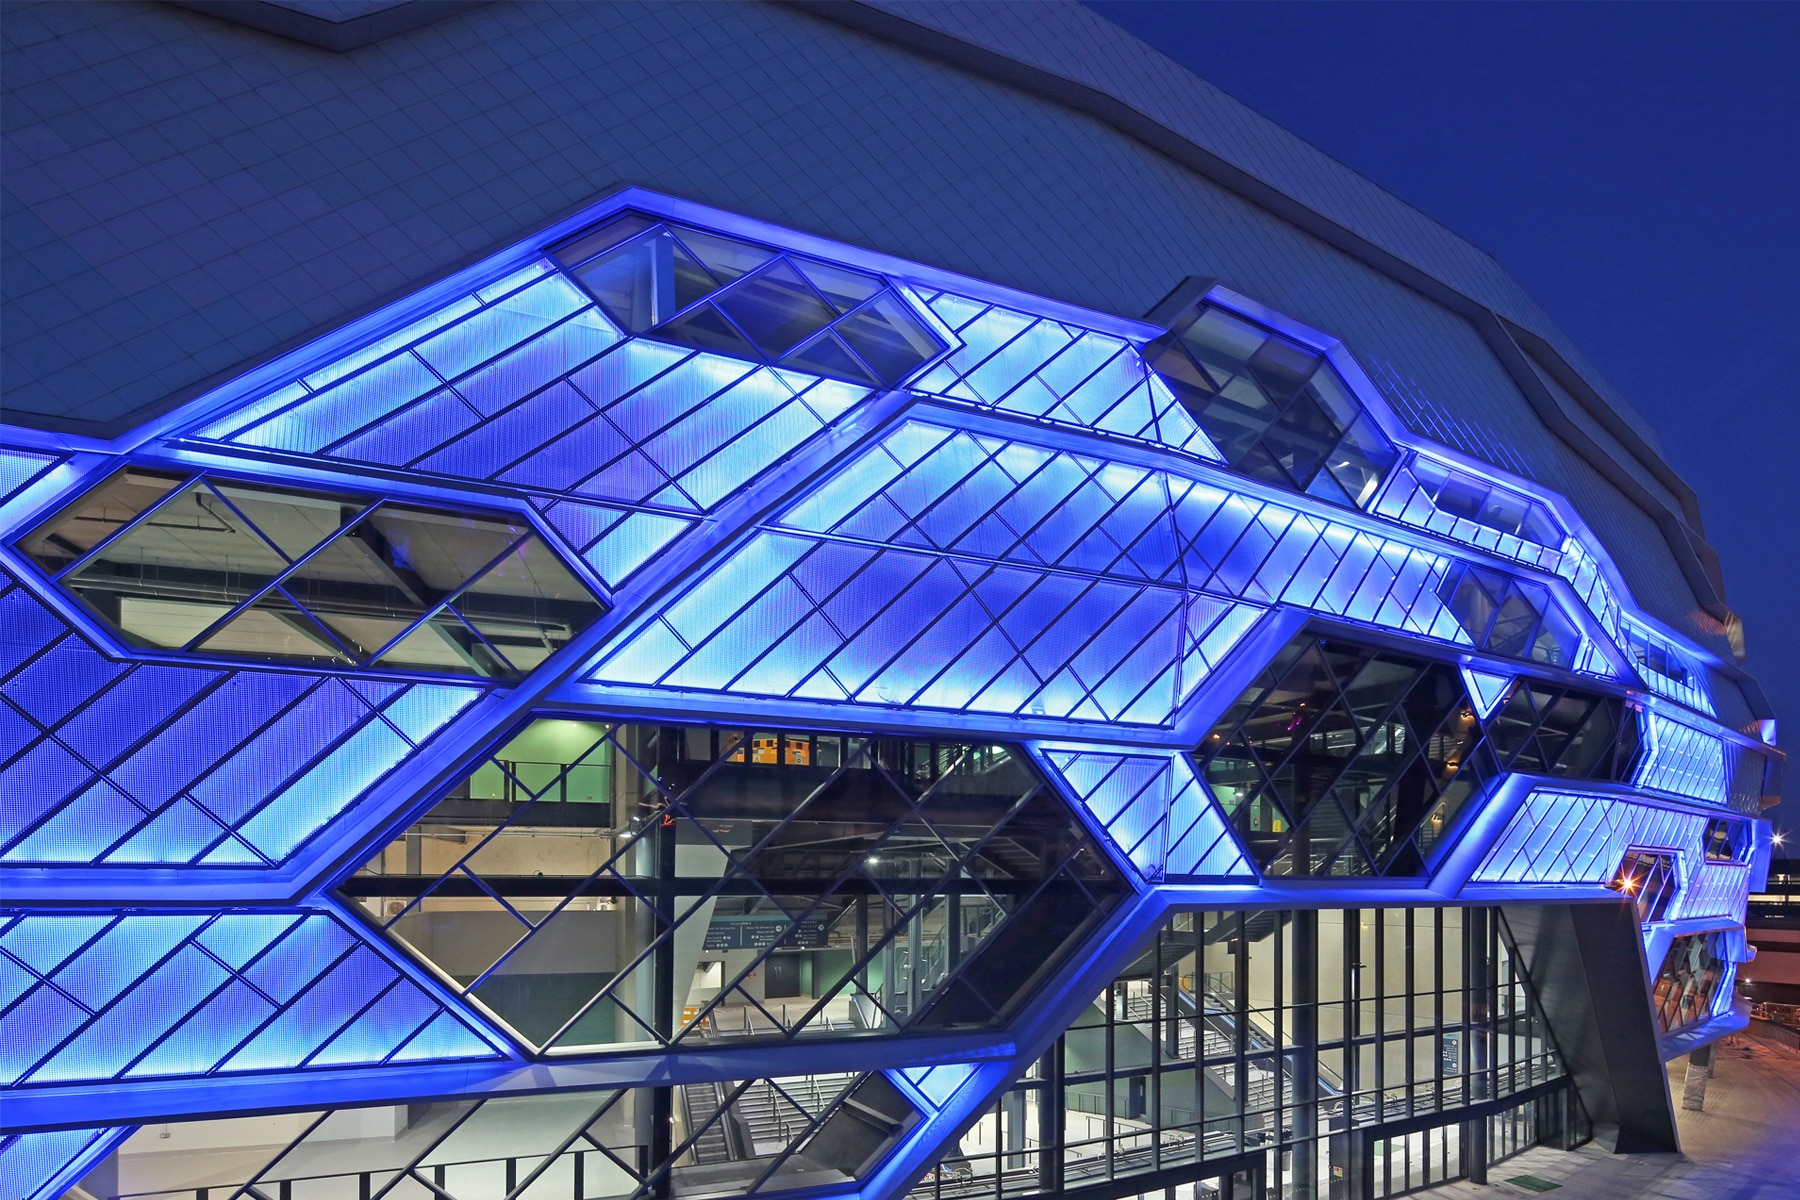 Rainscreen Cladding Leeds Arena | Punched aluminium rainscreen cladding with backlit panels